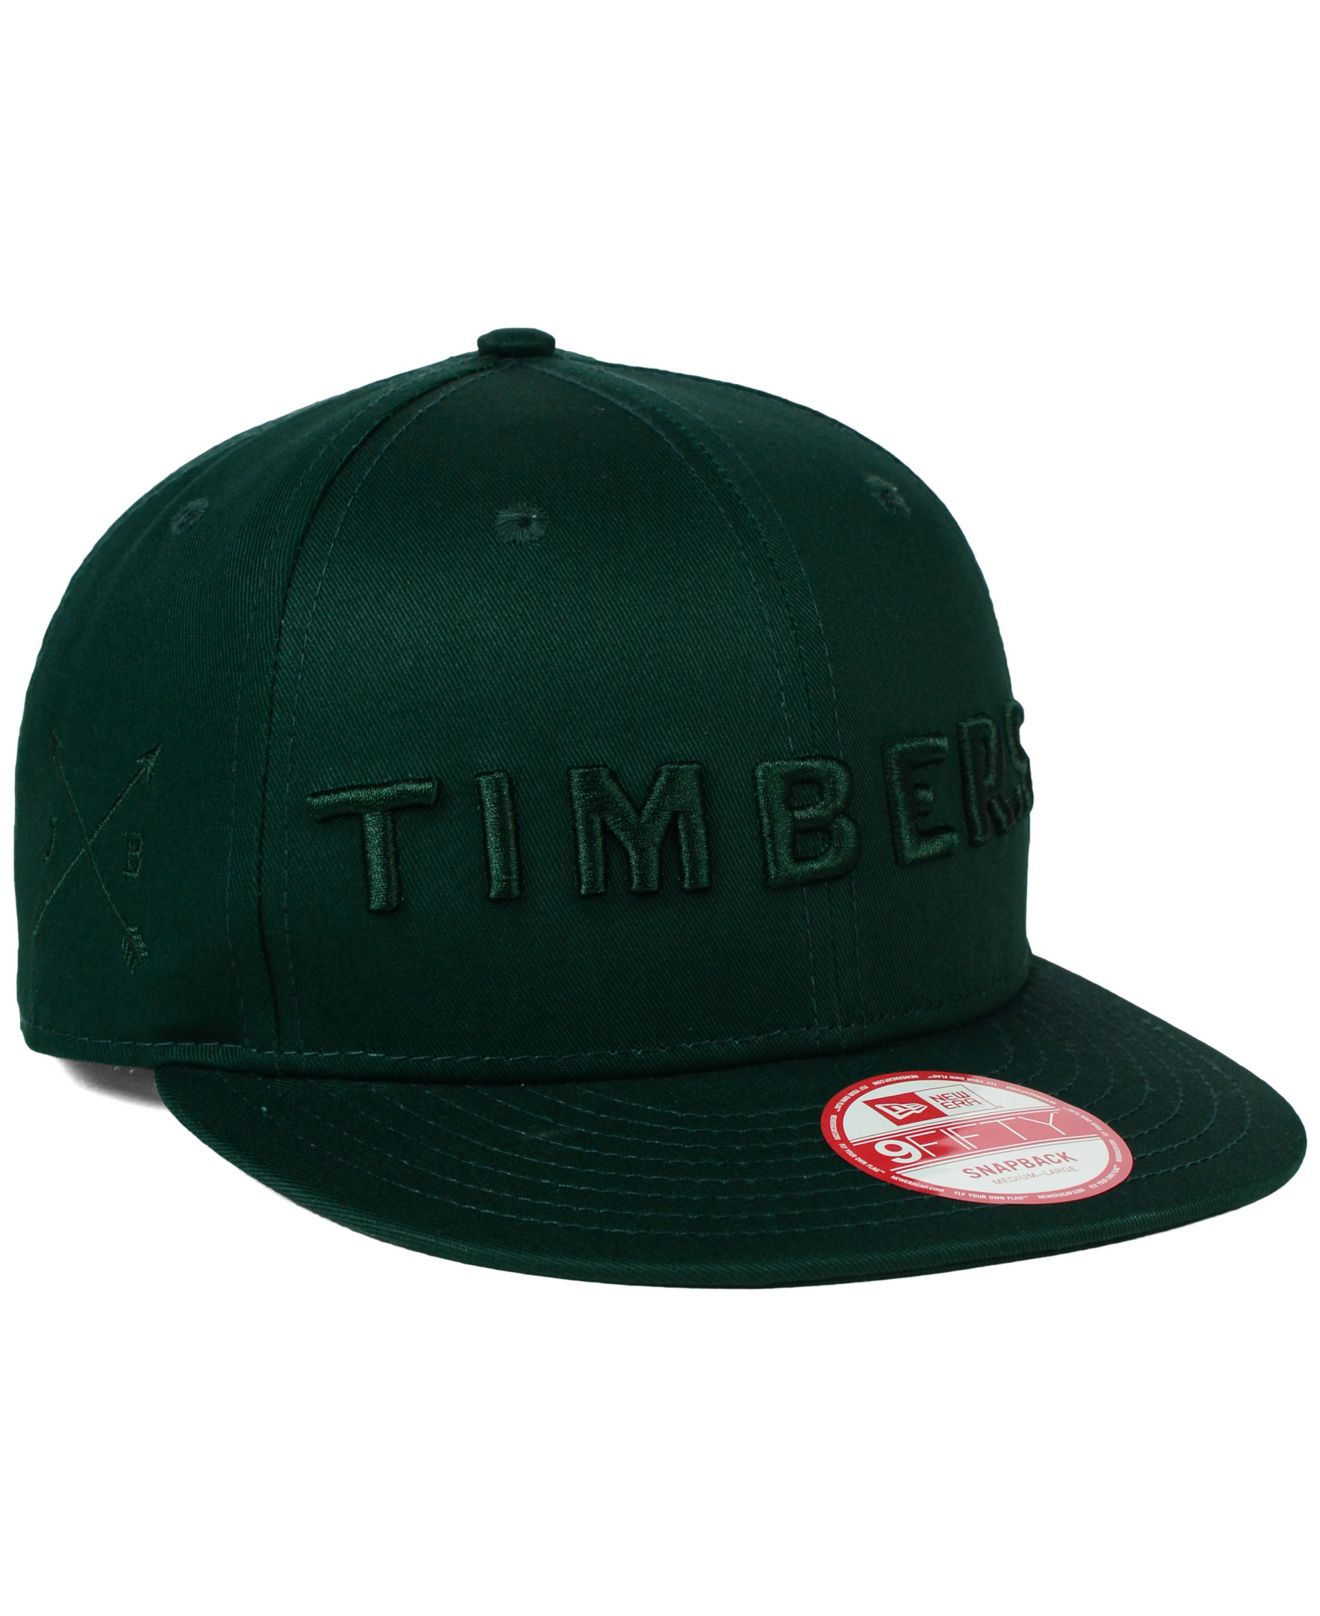 08dccb5dfe4a8 ... top quality 50 off lyst ktz portland timbers undefeated 9fifty snapback  cap in black bc48e ec58b